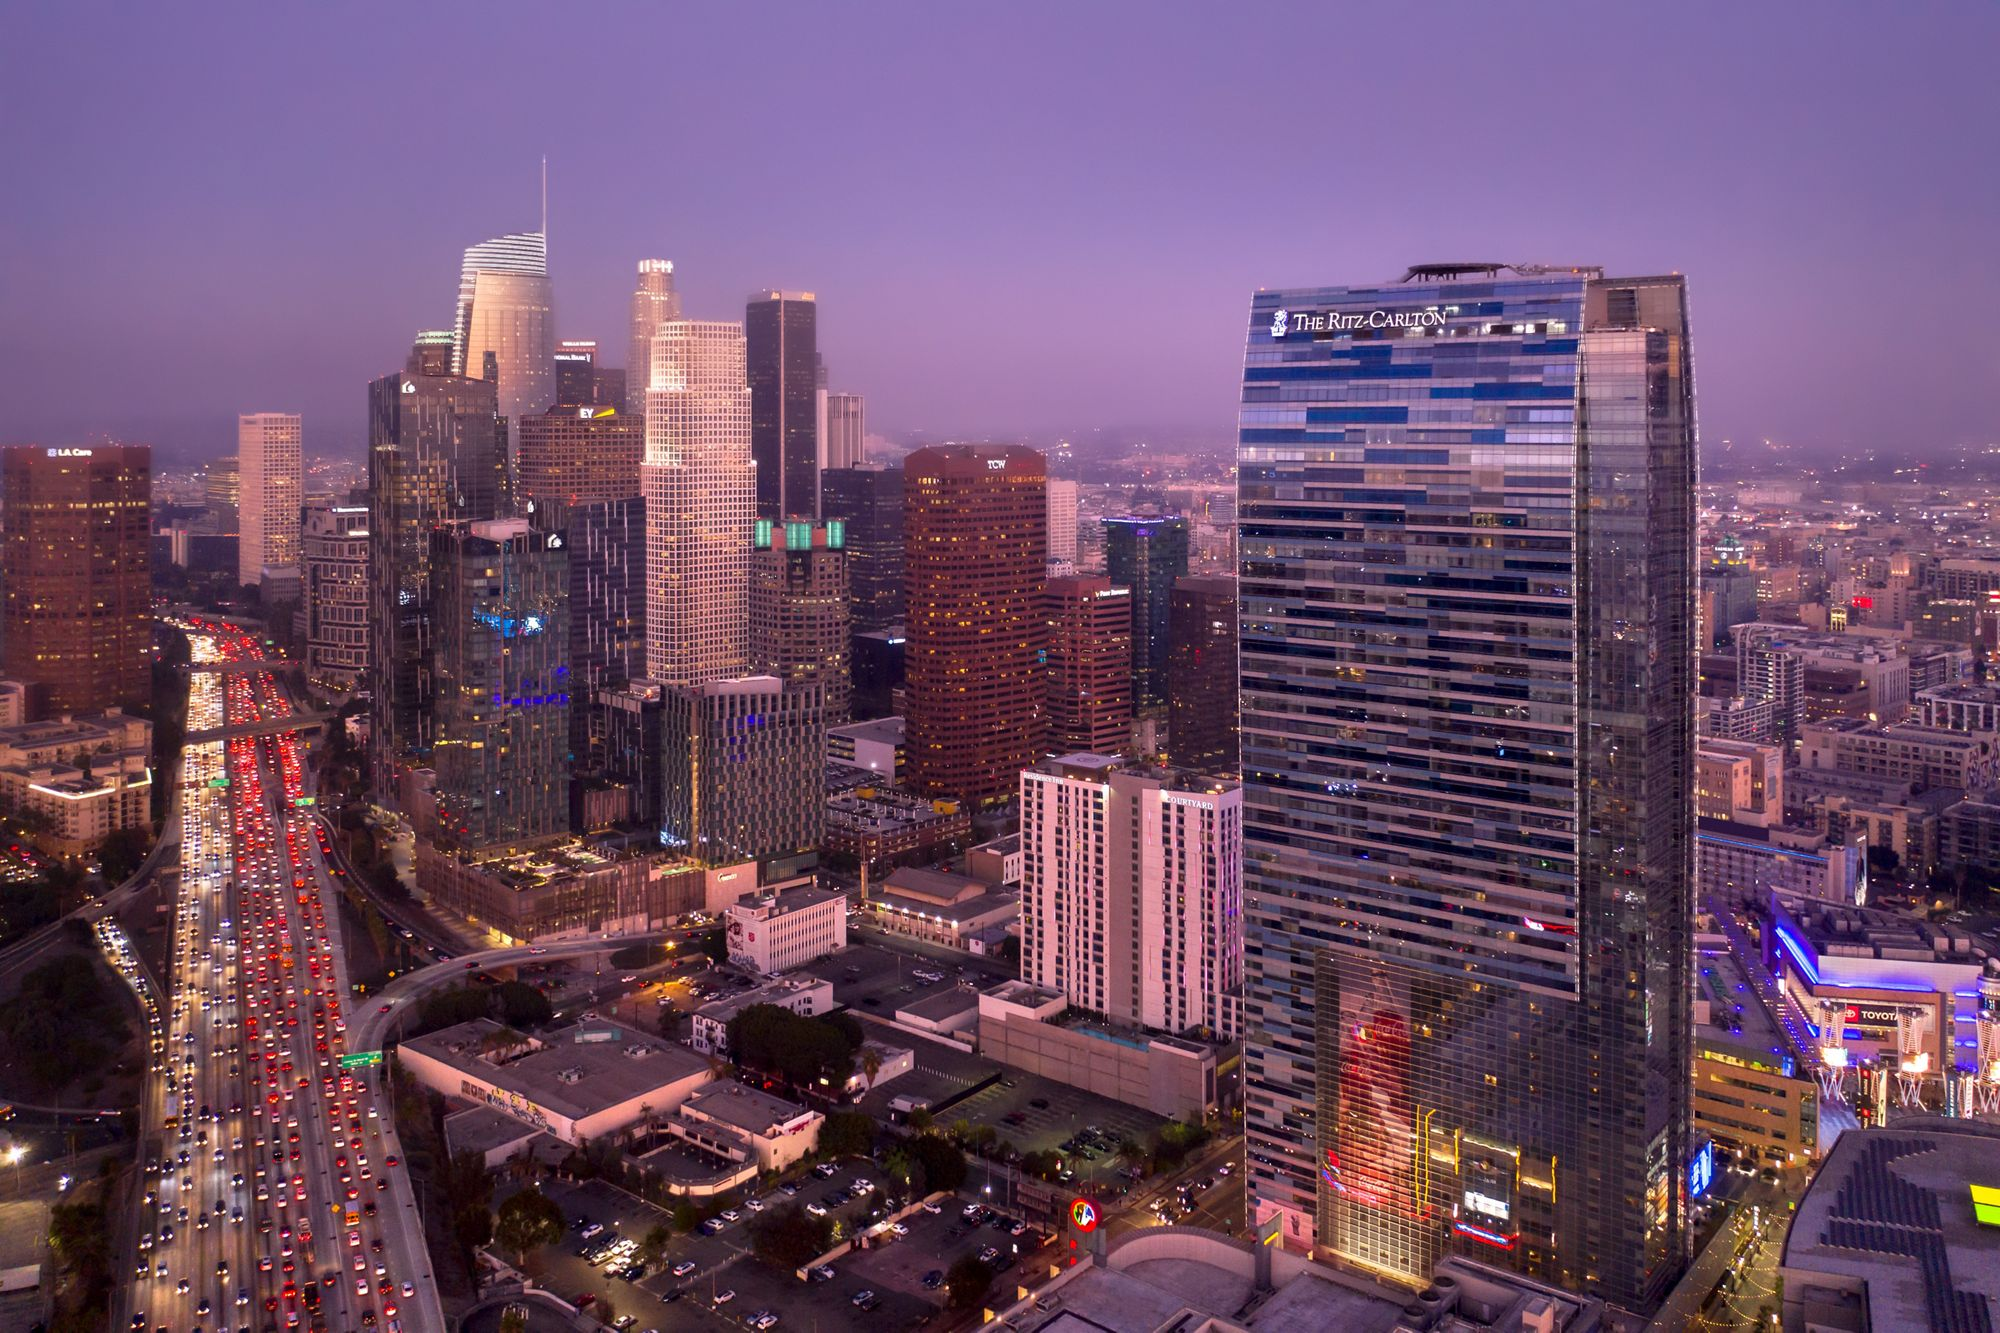 Los Angeles Hotels For New Year's Eve 2021